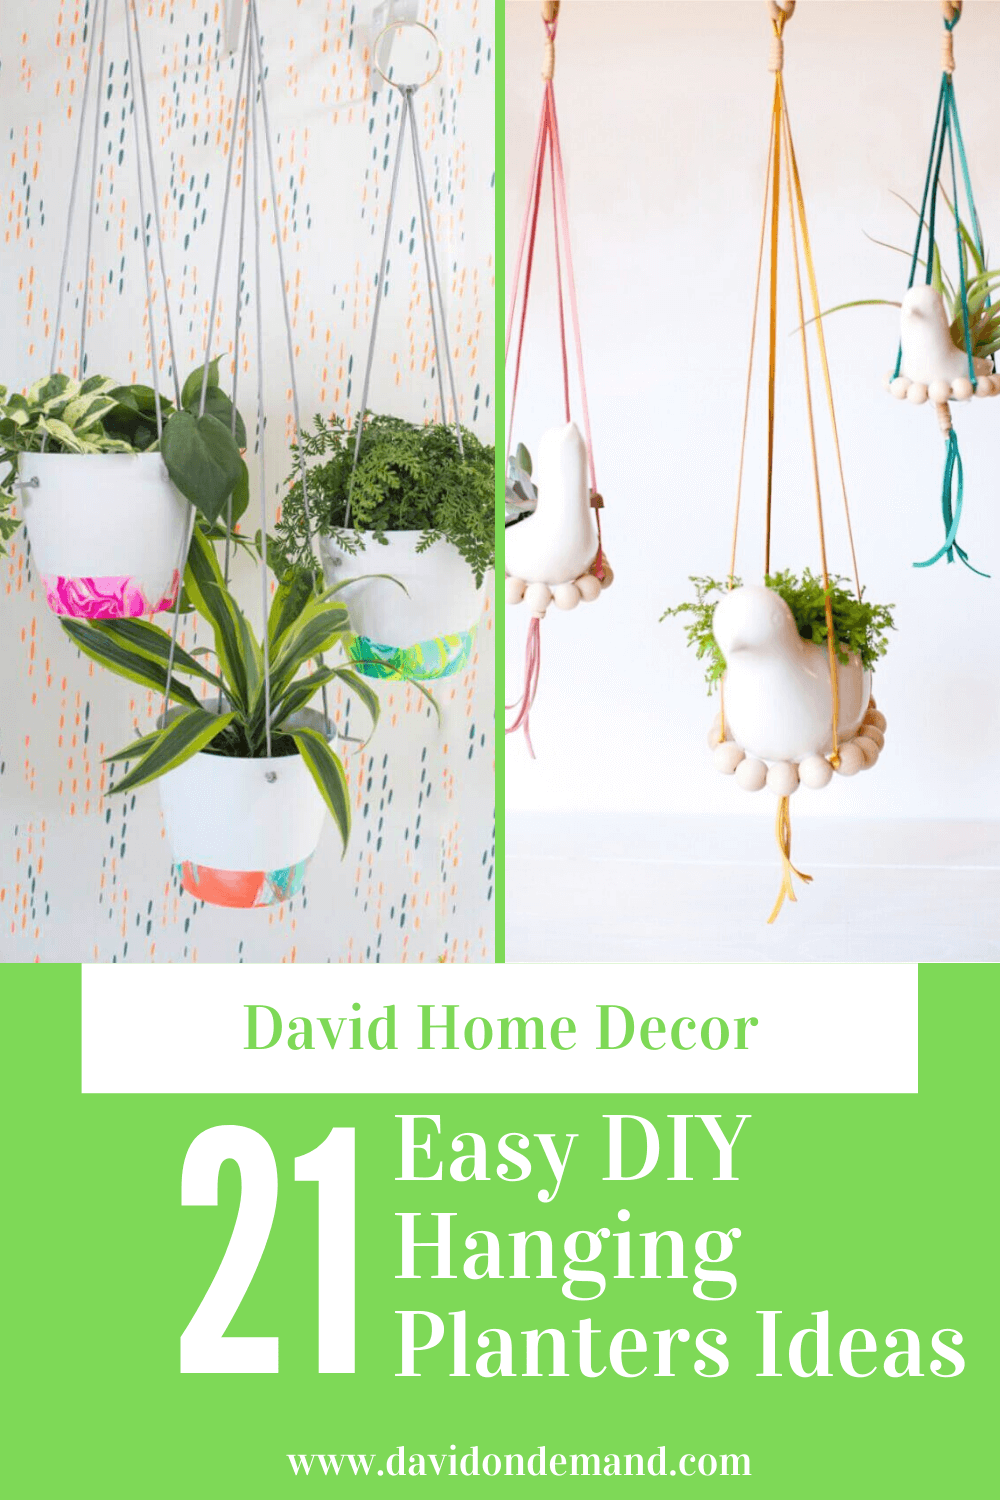 Easy DIY Hanging Planters Ideas